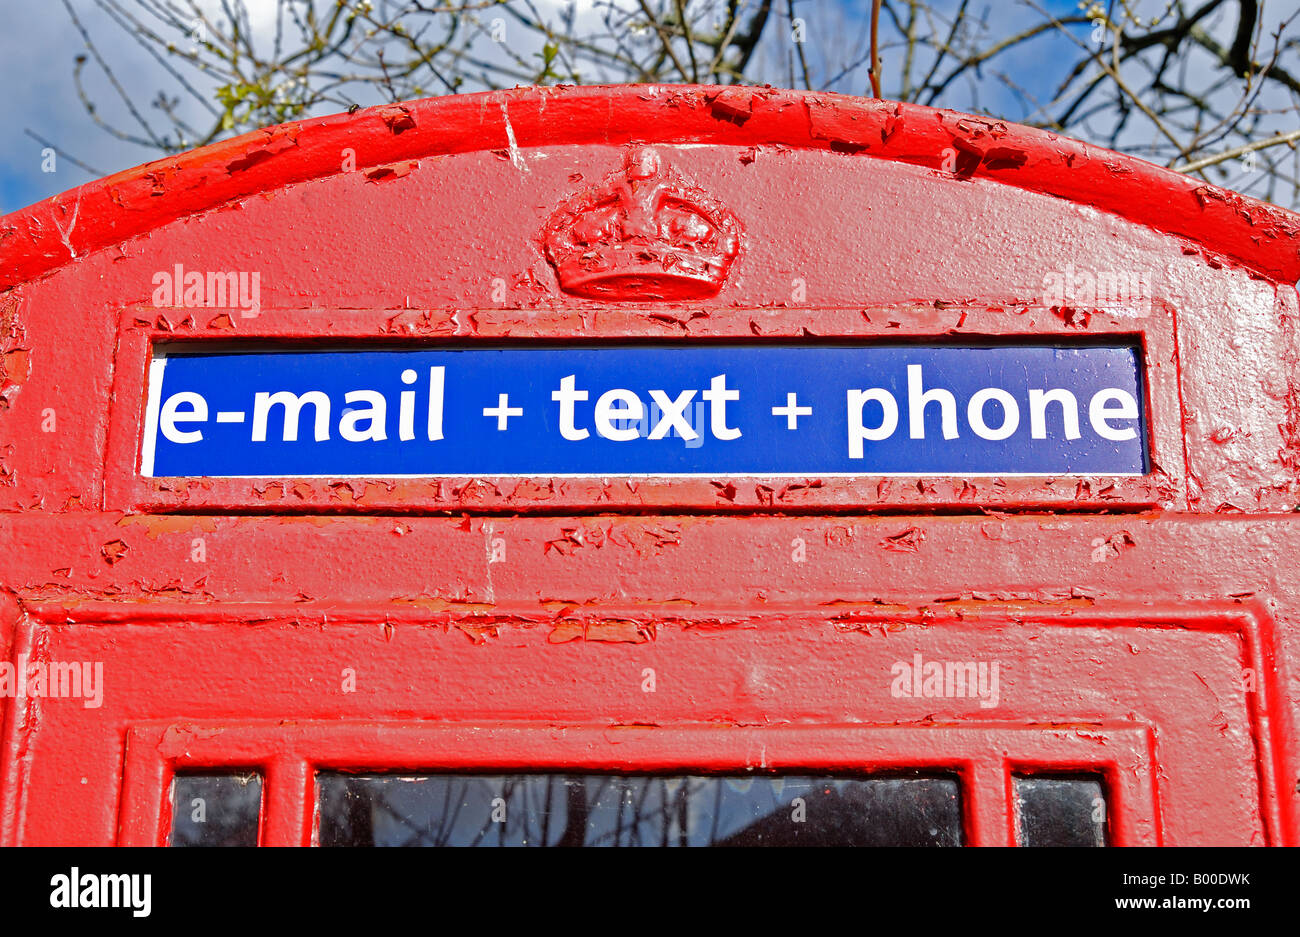 an english phone box showing text and e-mail information - Stock Image